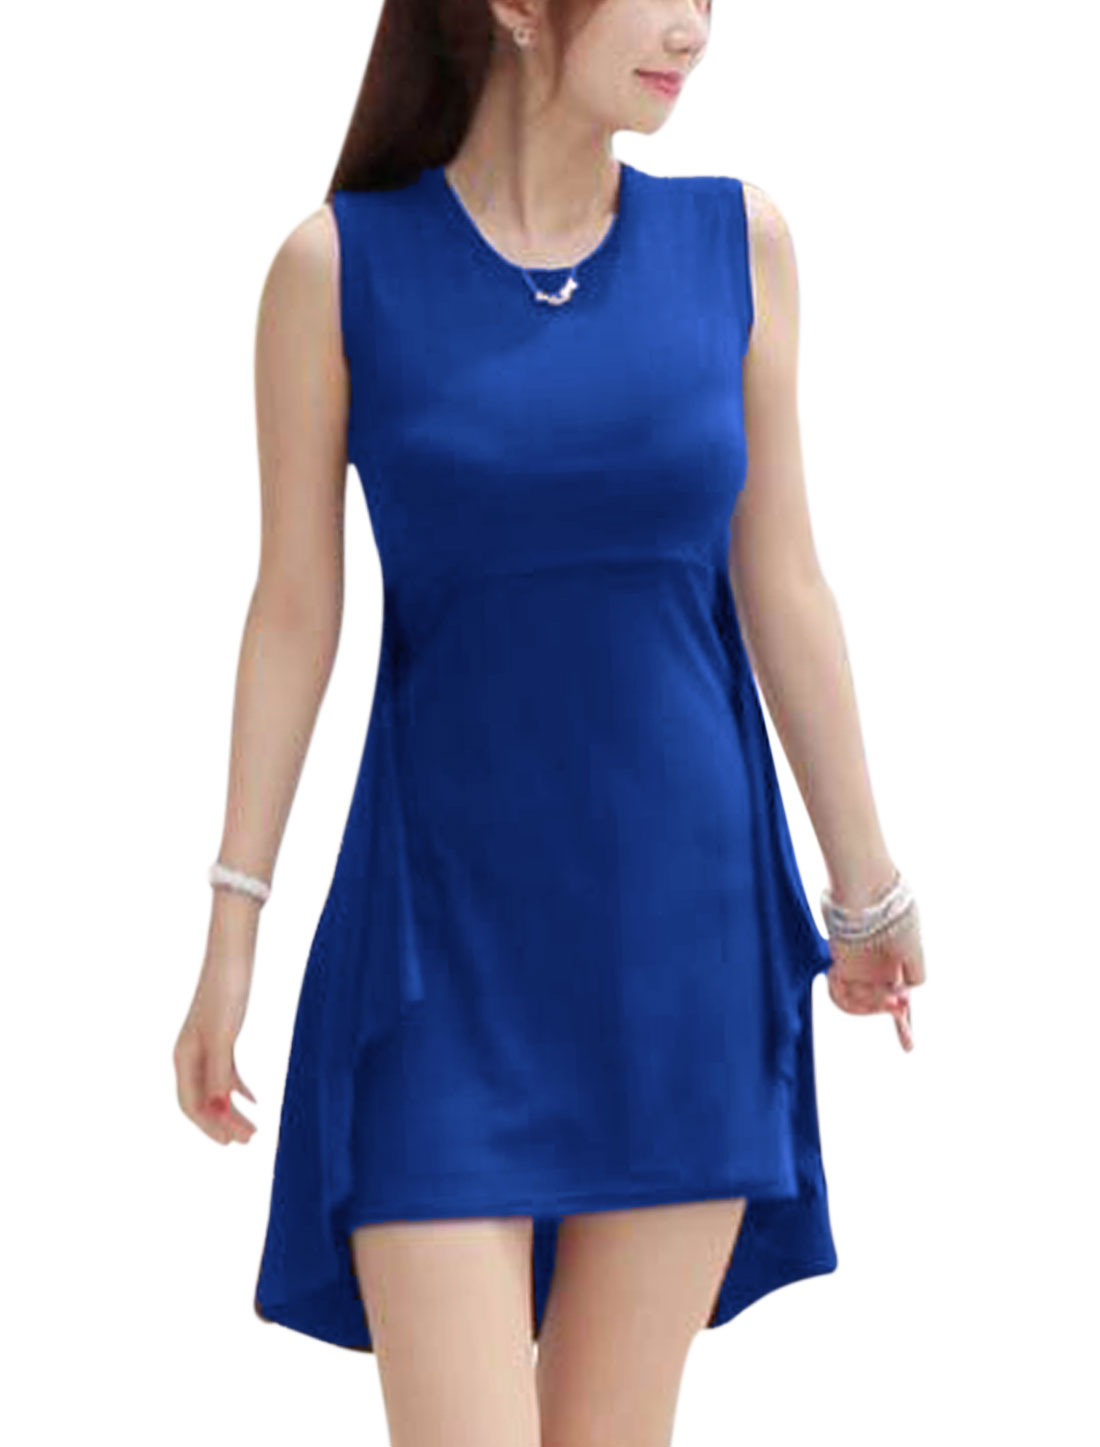 Ladies Sleeveless Layered Design Panel Embellished Tank Dress Royal Blue S